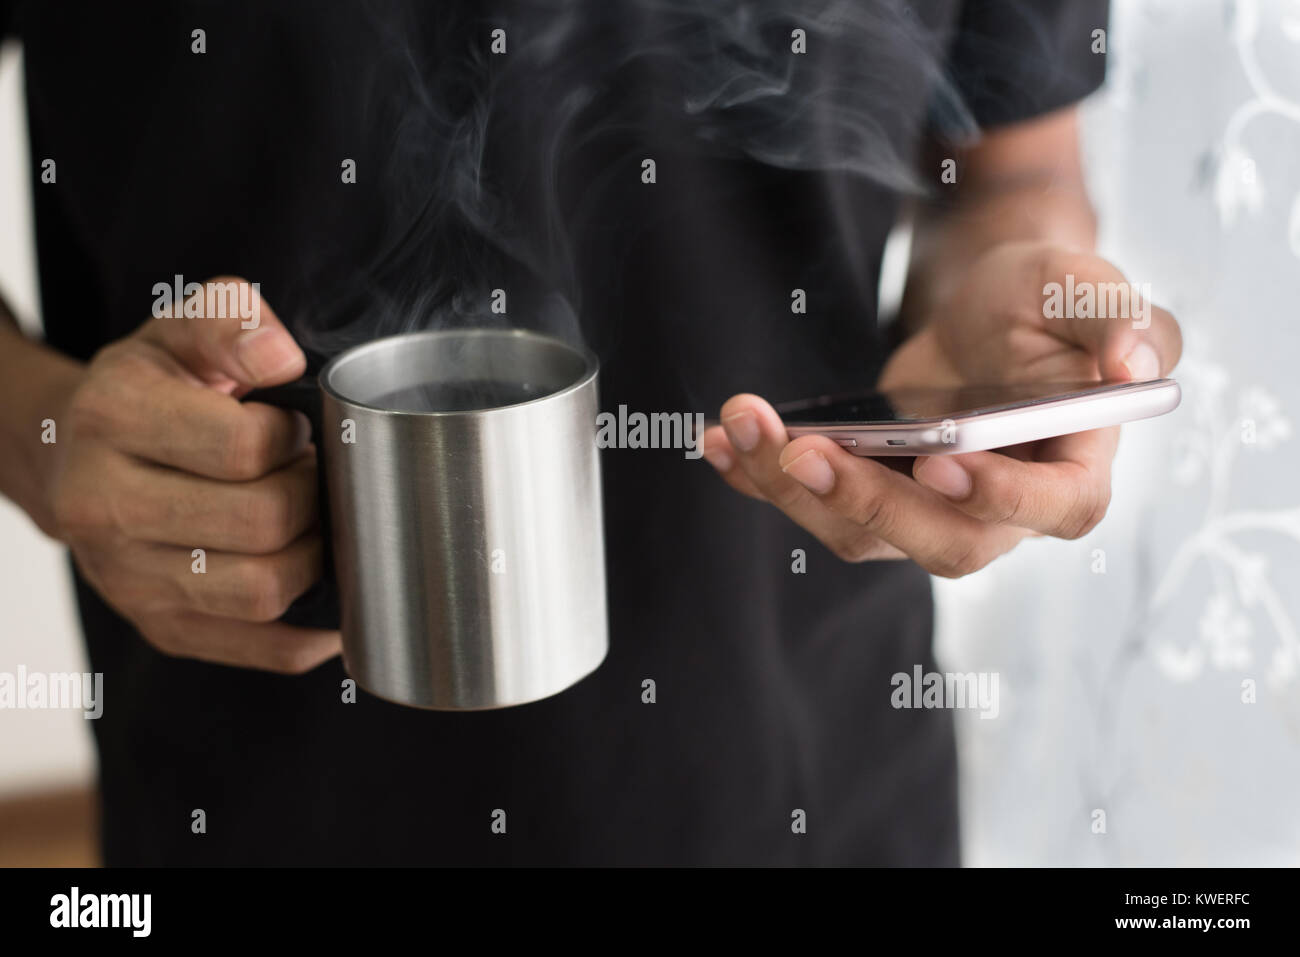 man holding a cup of coffee while using smartphone in his home. weekend lifestyle concept - Stock Image